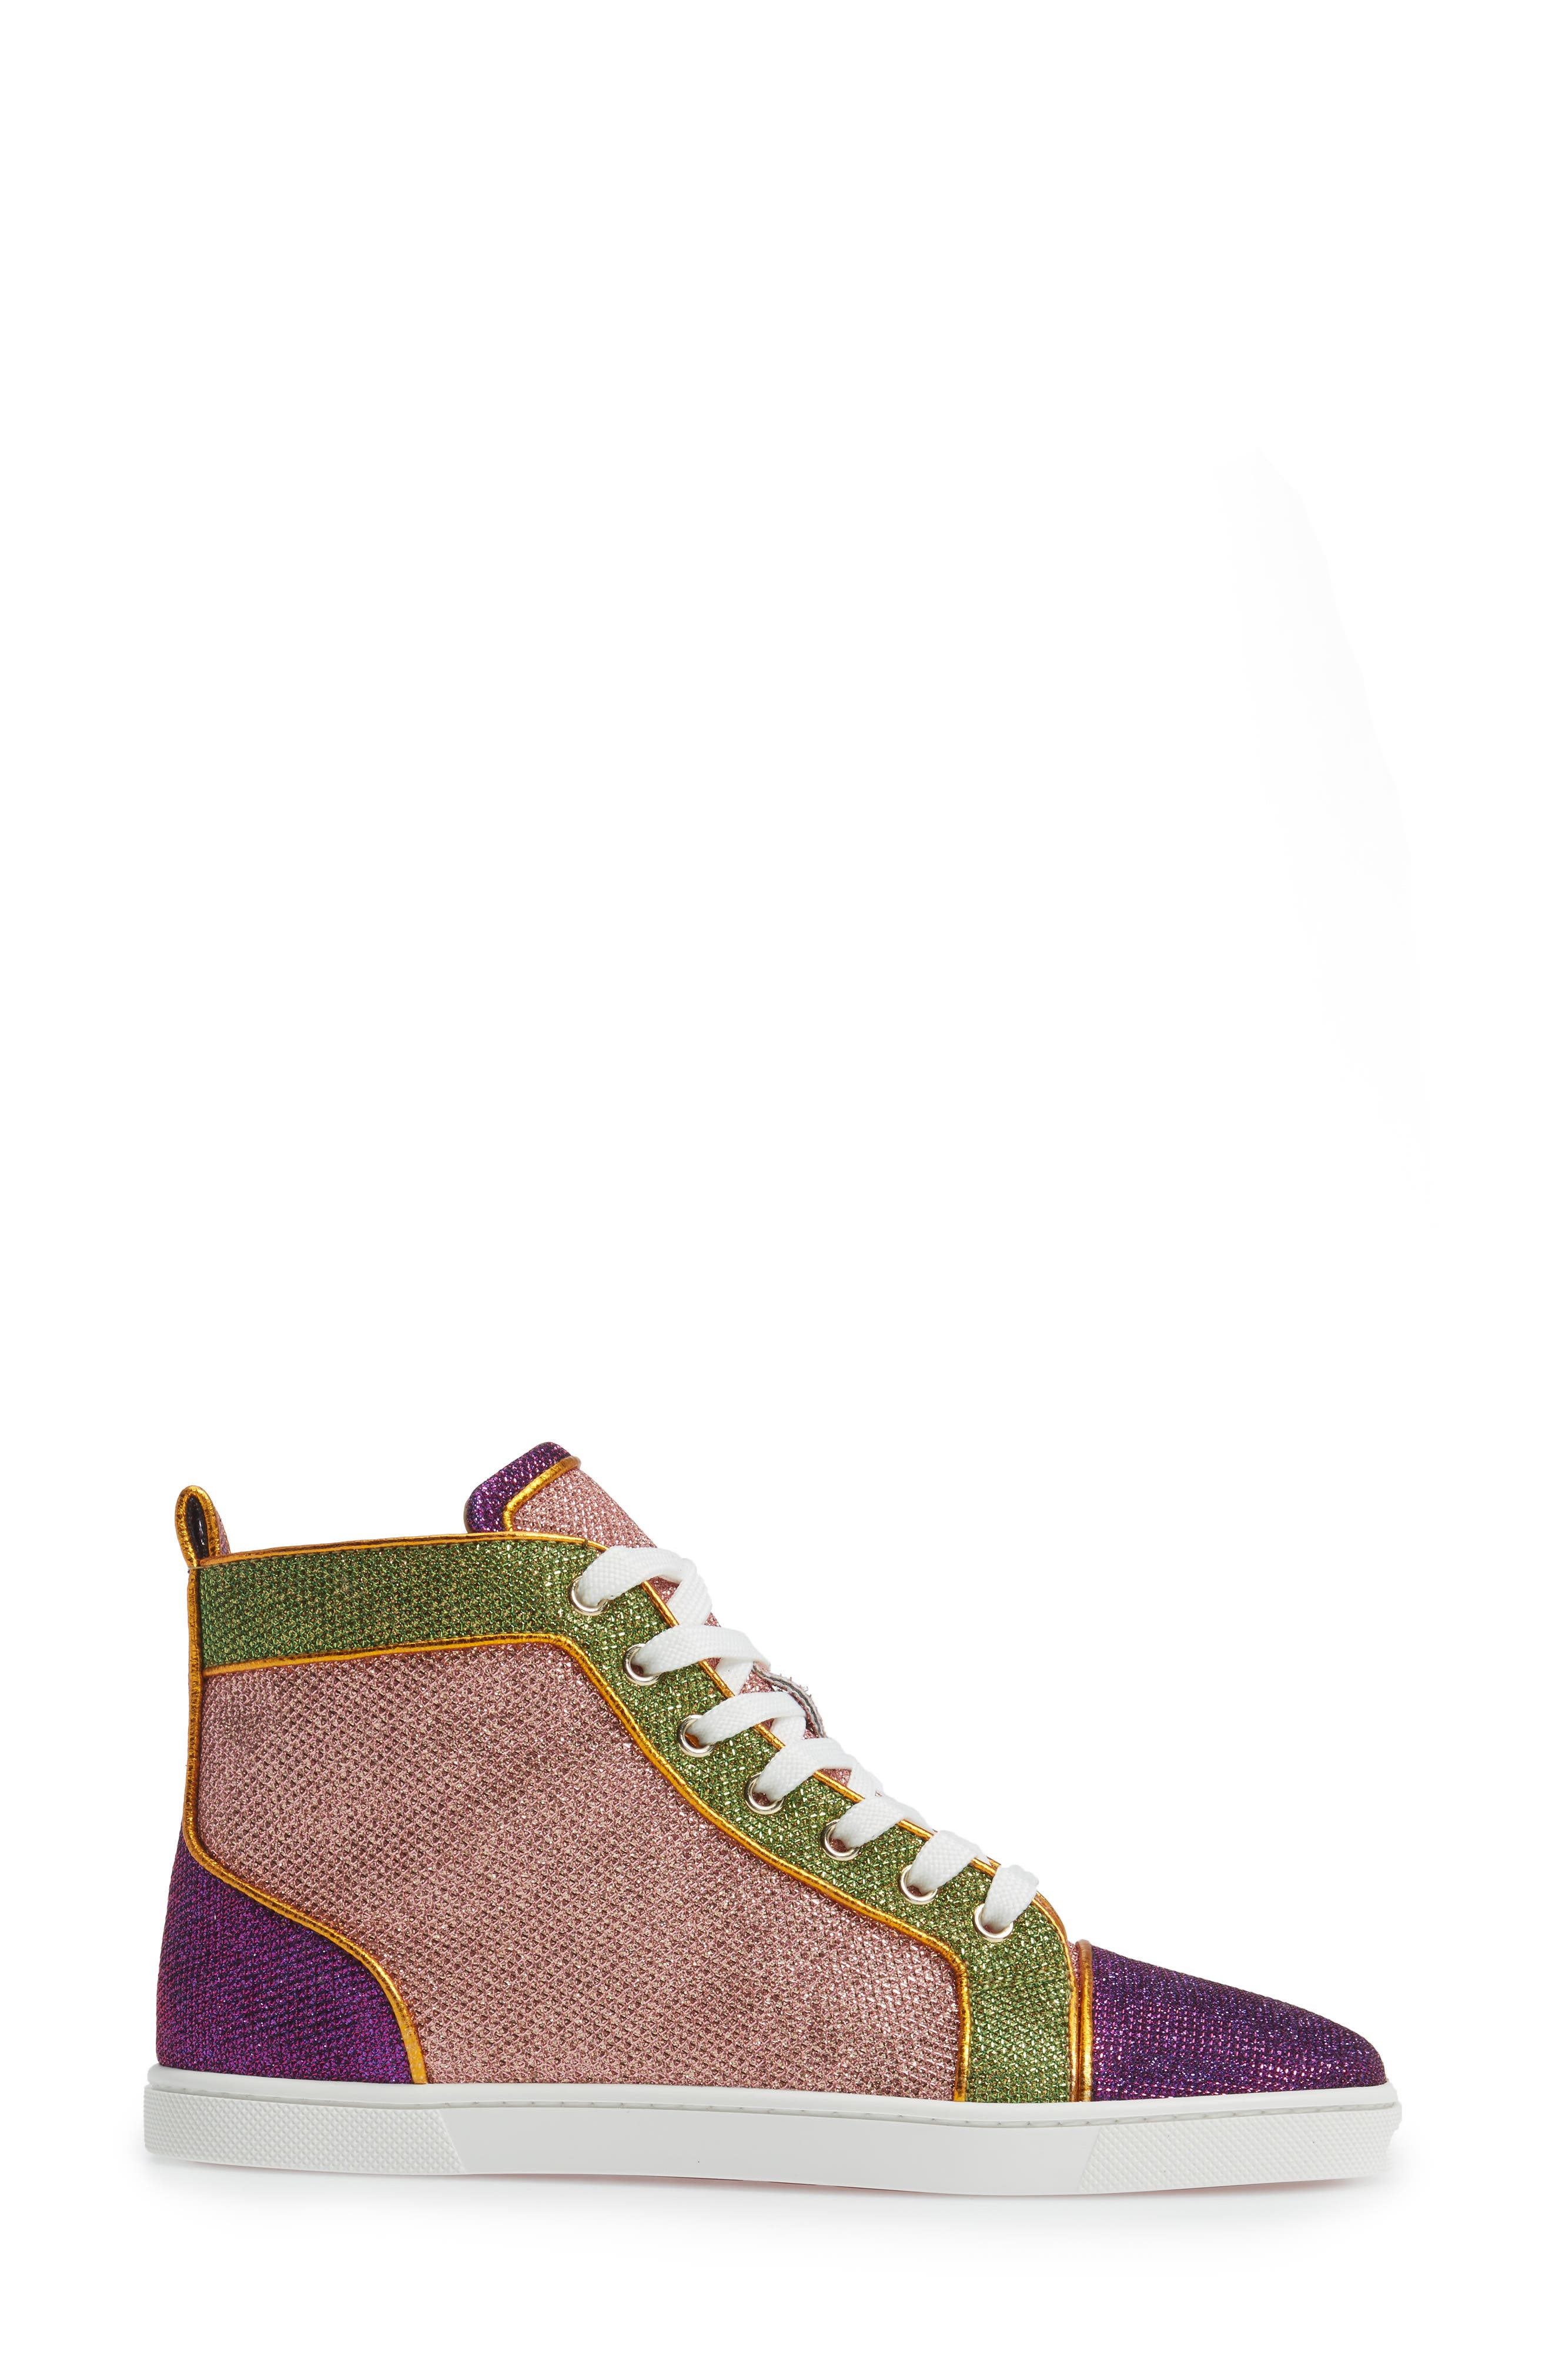 Bip Bip High Top Sneaker,                             Alternate thumbnail 10, color,